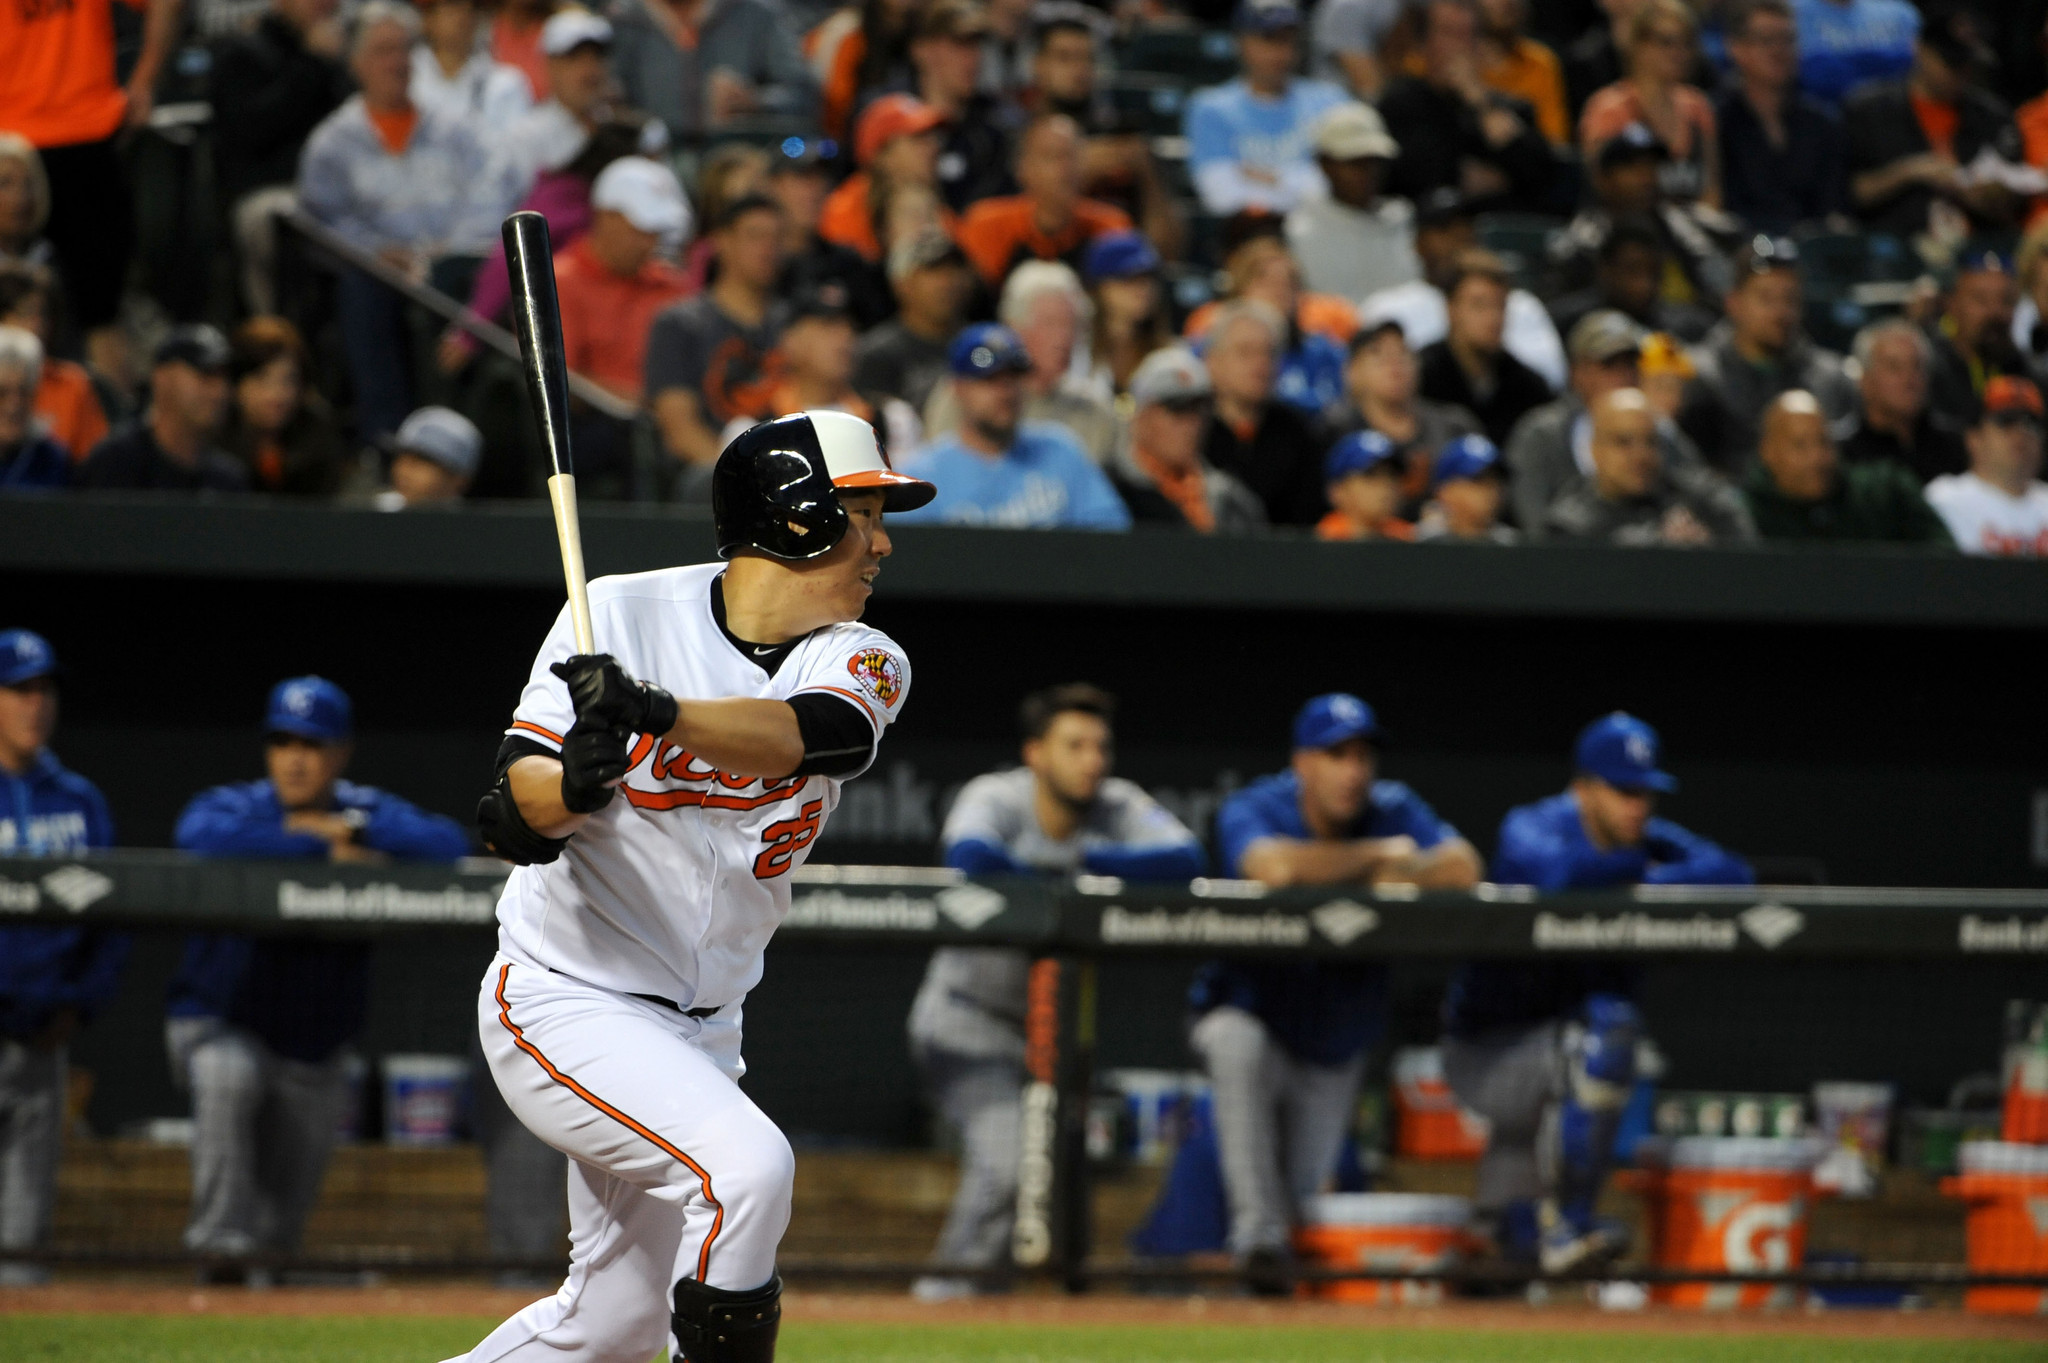 Bal-five-orioles-stats-that-stand-out-what-makes-hyun-soo-kim-the-hitting-machine-20160609